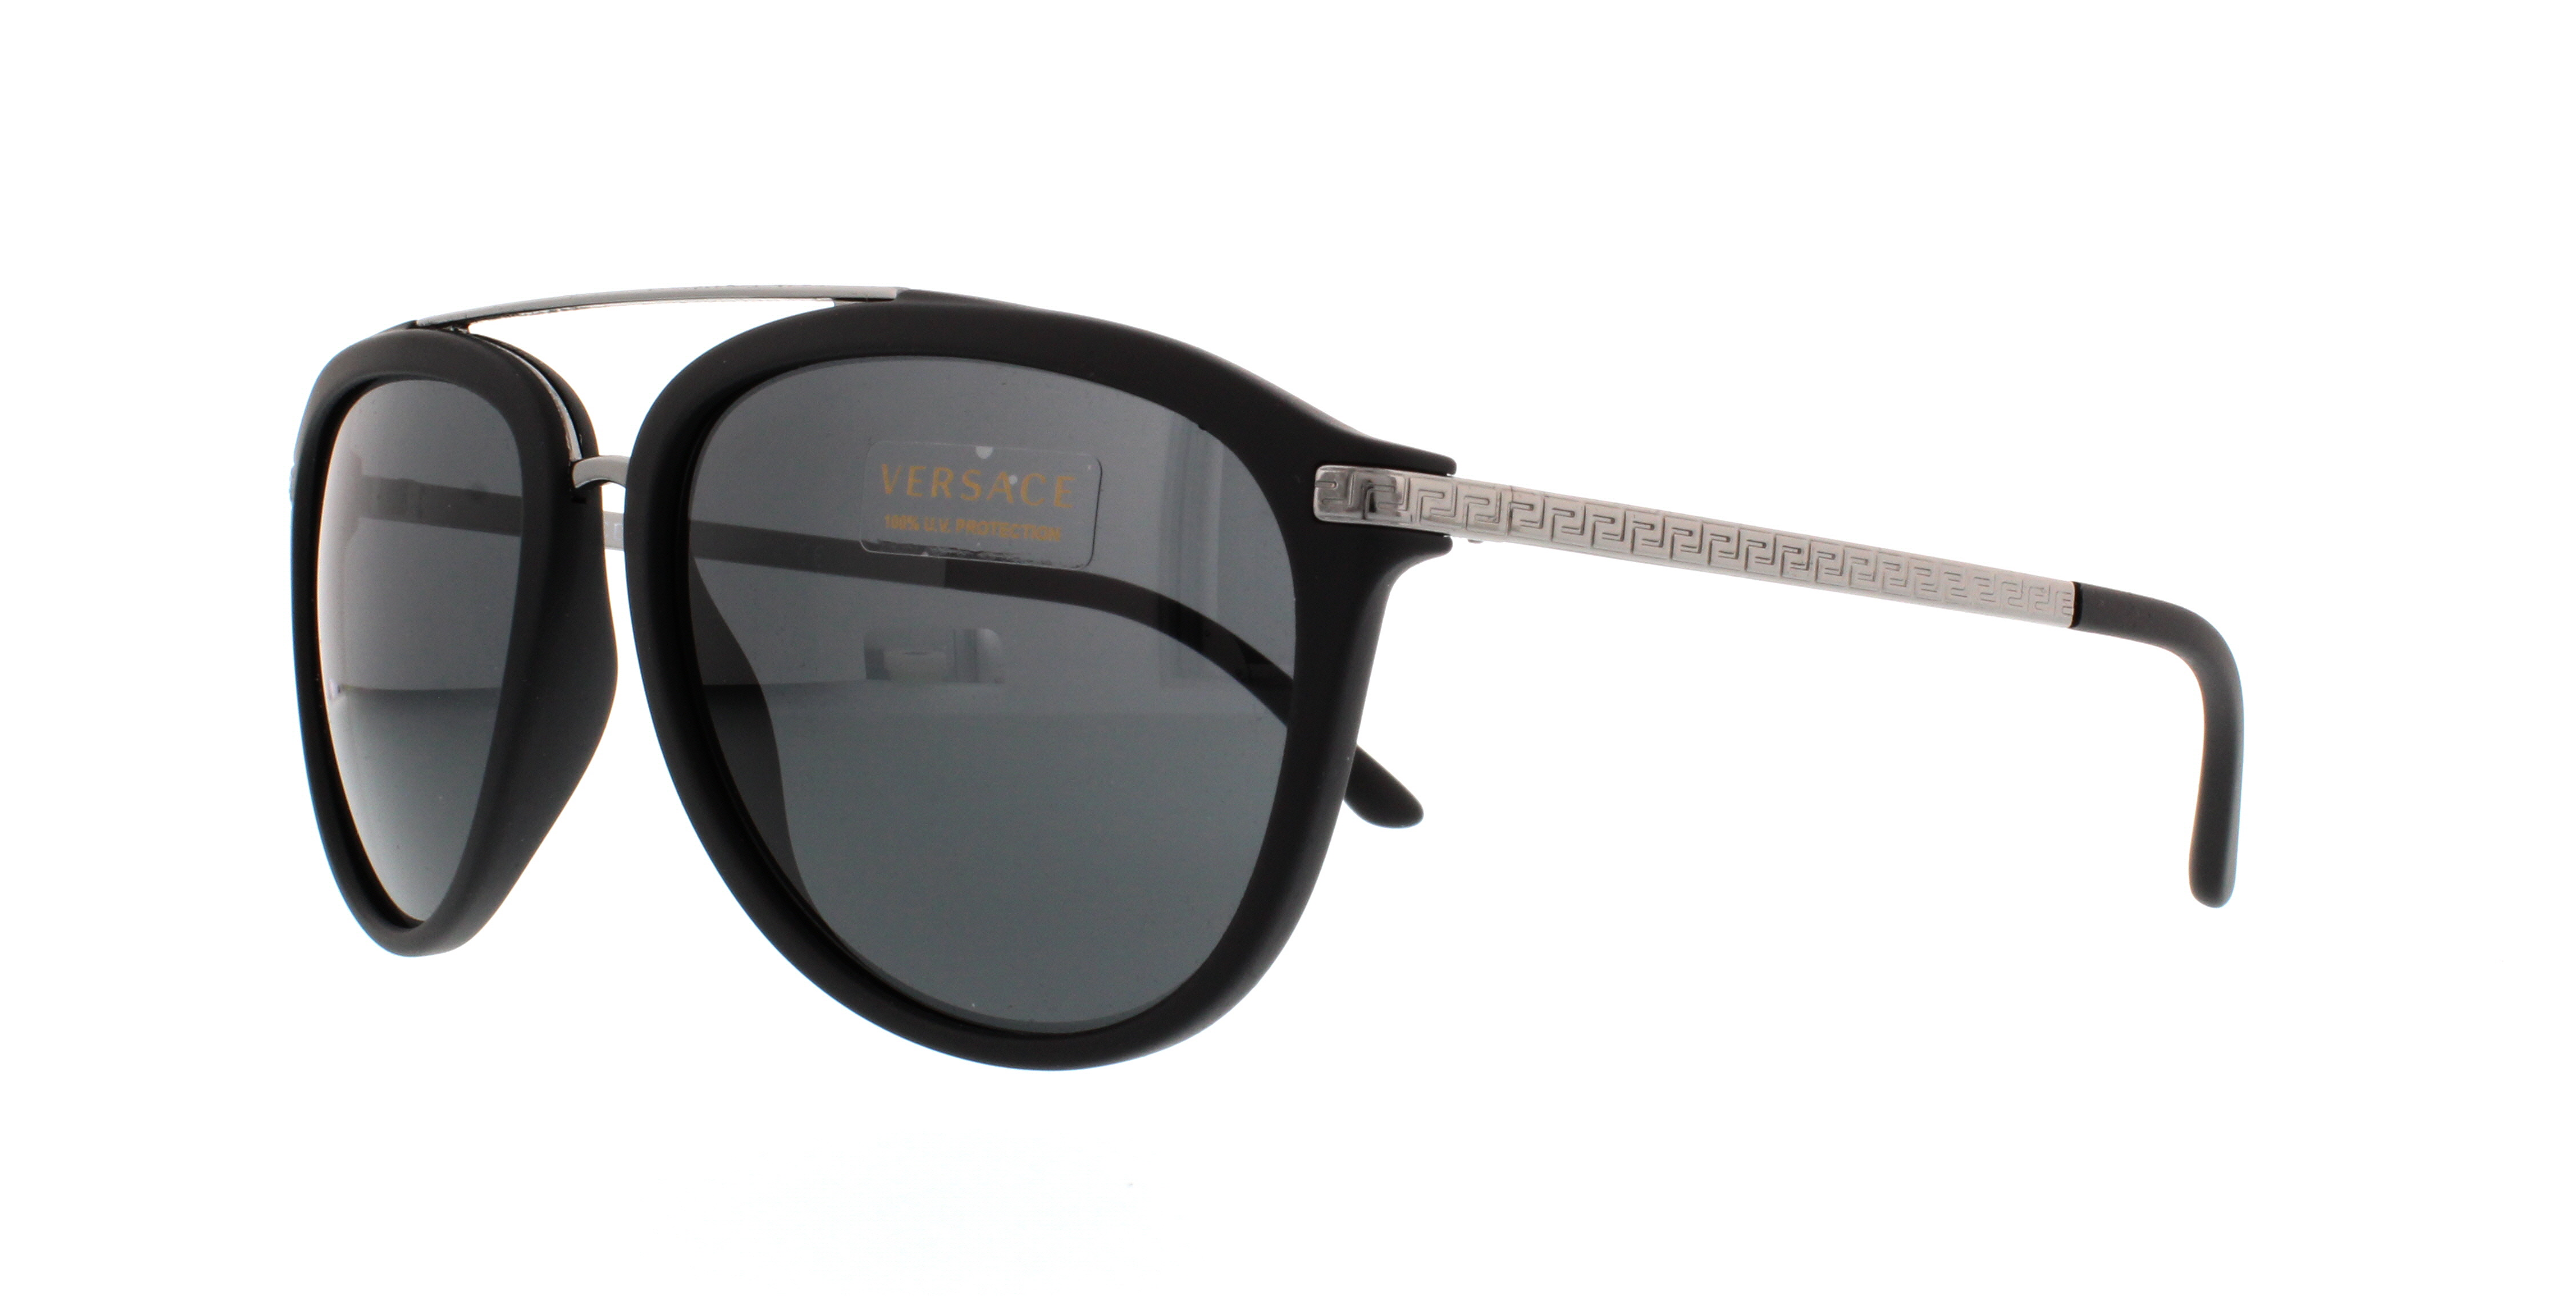 Picture of Versace Sunglasses VE4299